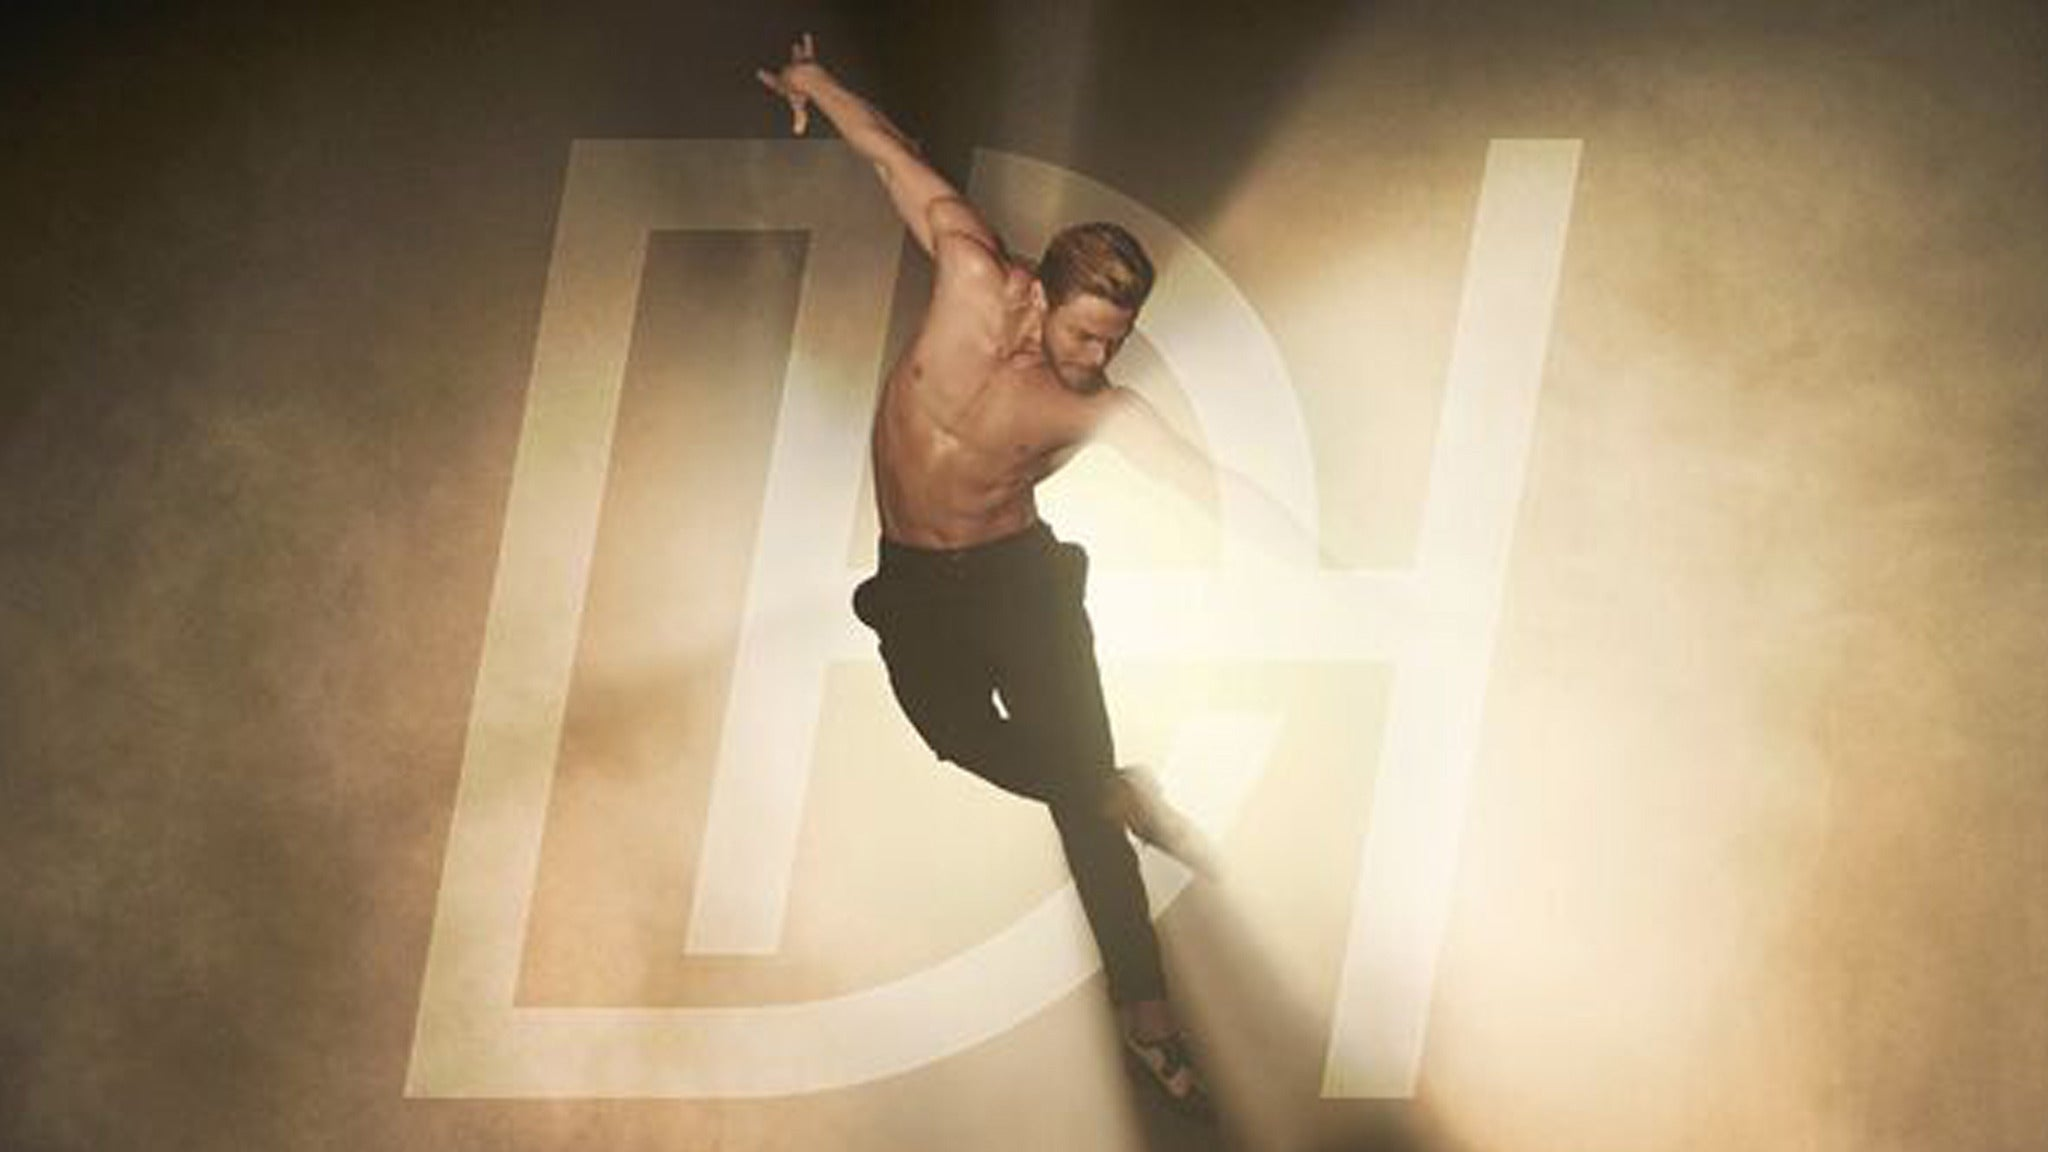 Derek Hough: Live! The Tour at Stephens Auditorium